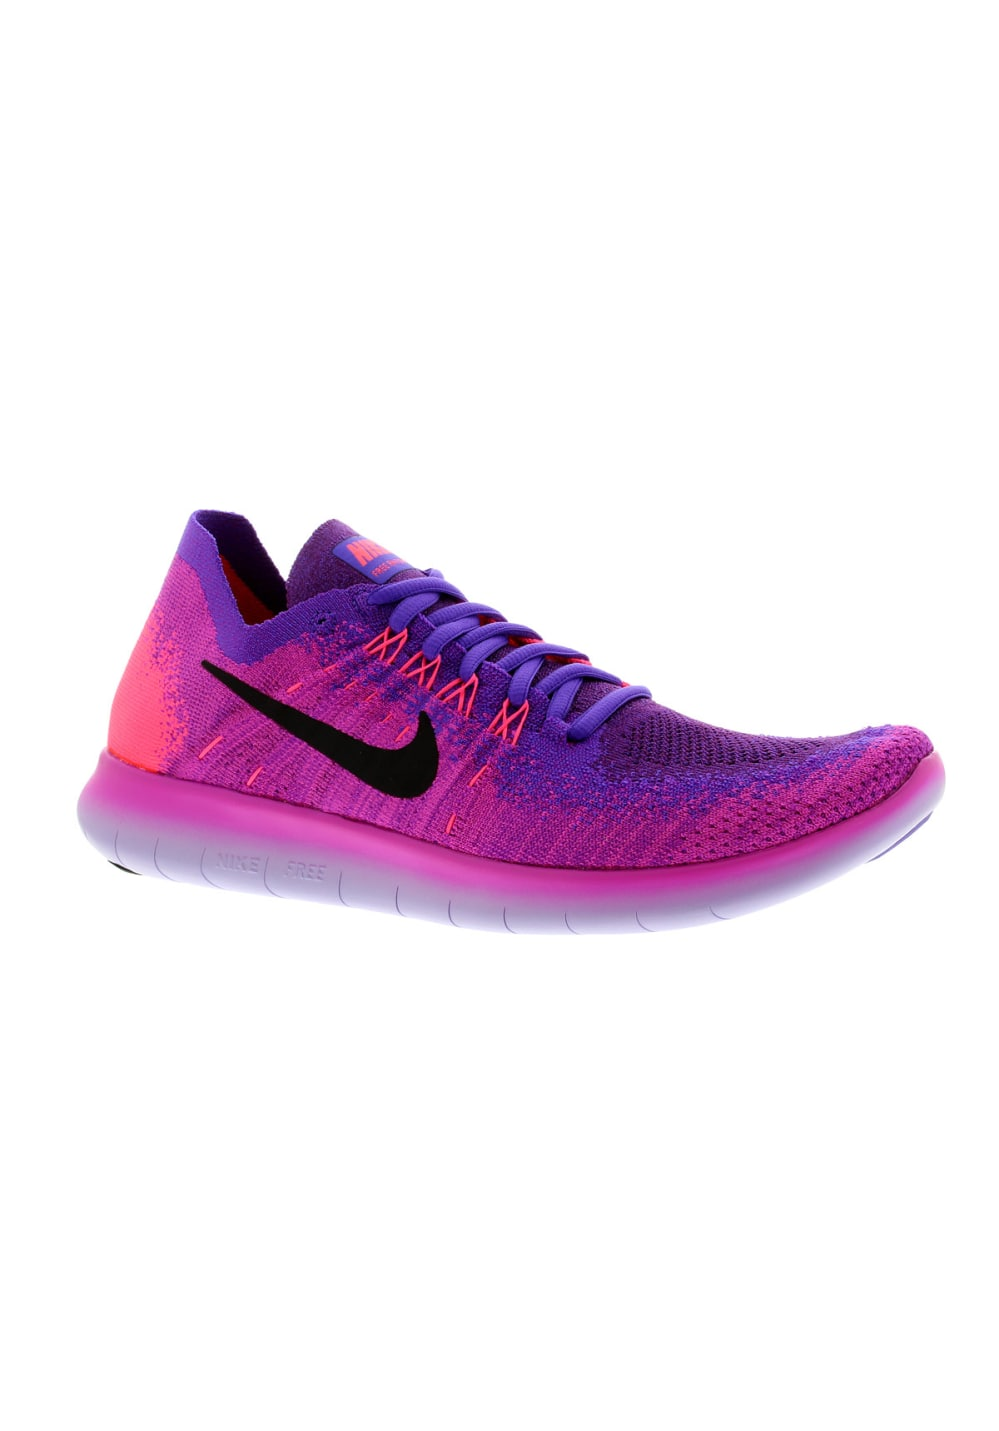 save off fecf1 e6bf6 Nike Free RN Flyknit 2017 - Running shoes for Women - Purple